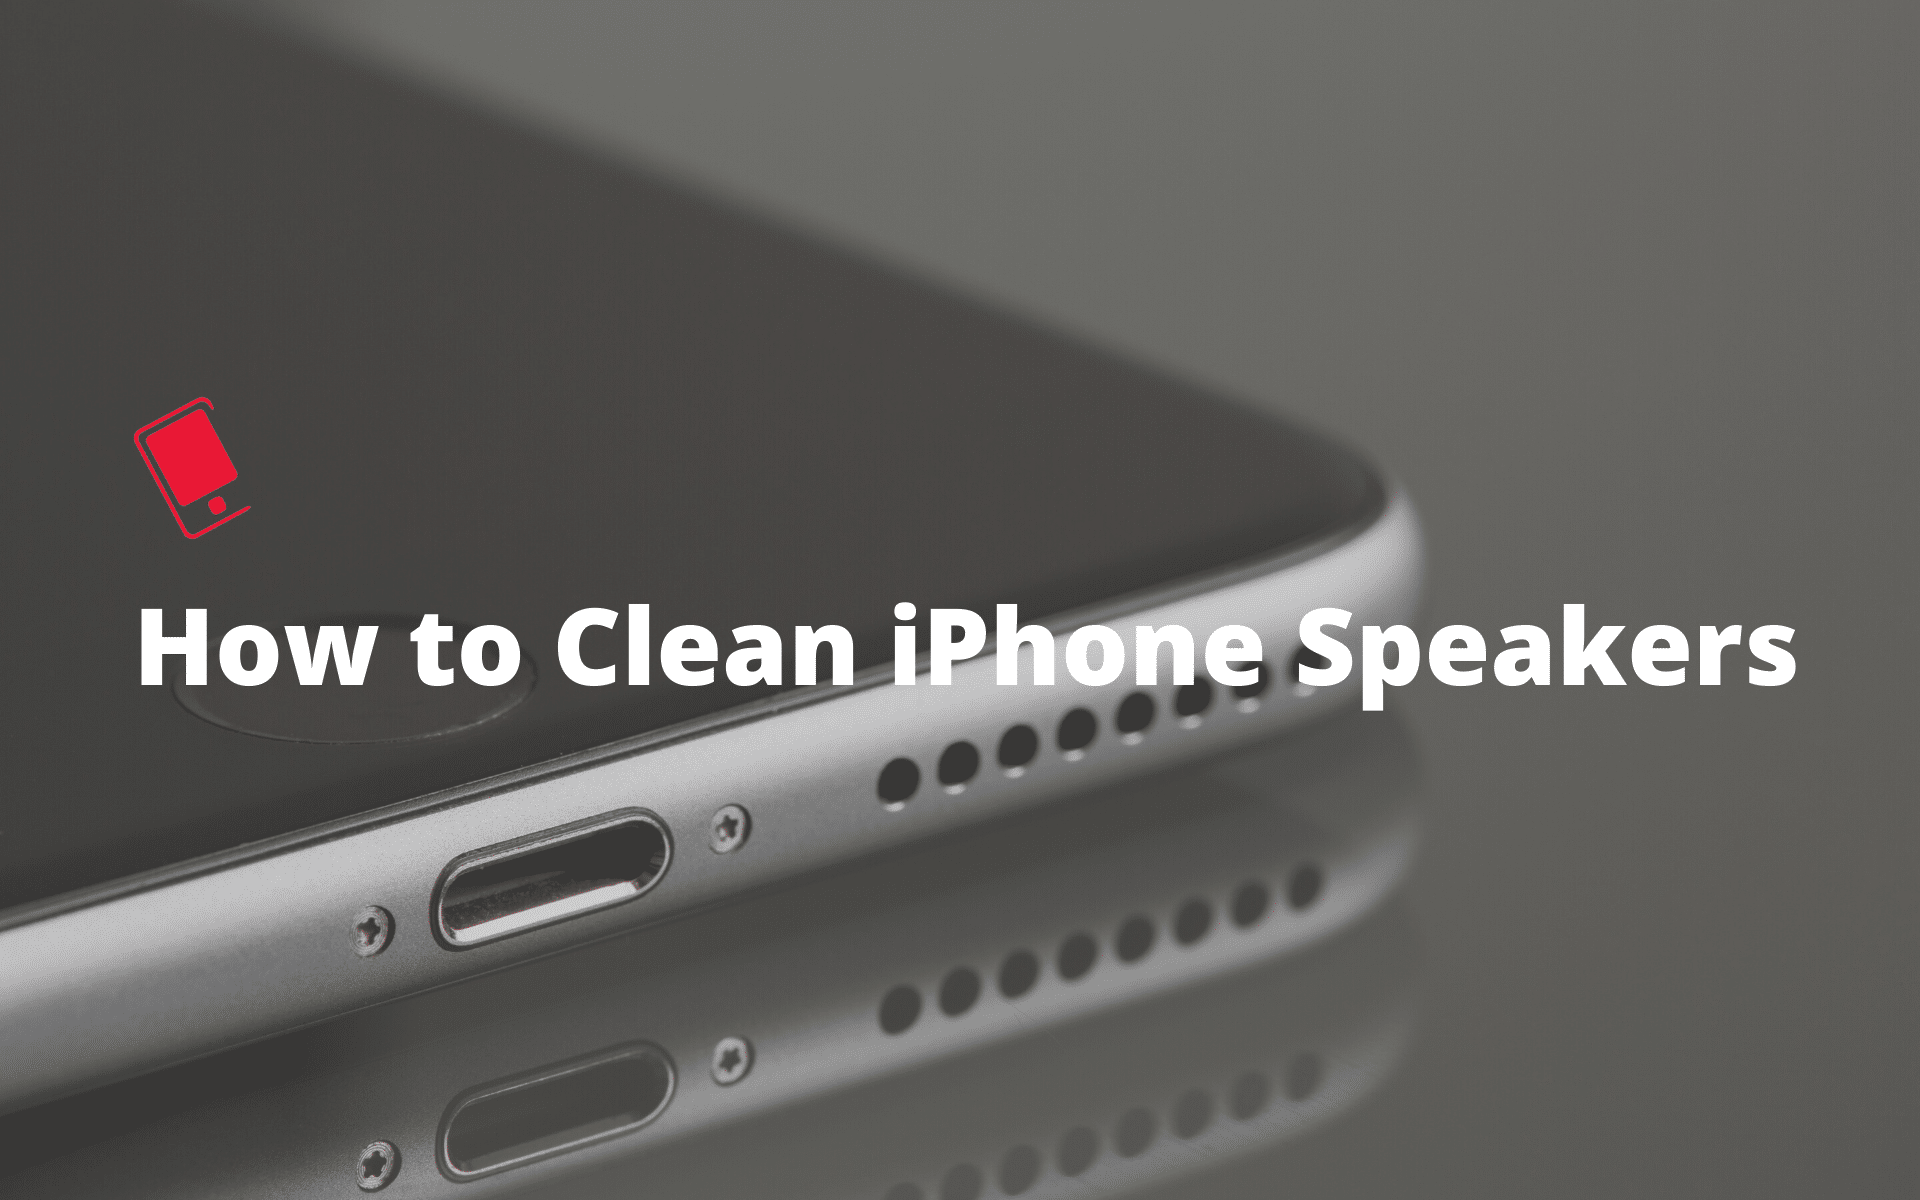 How to Clean iPhone Speakers Without Damaging Them